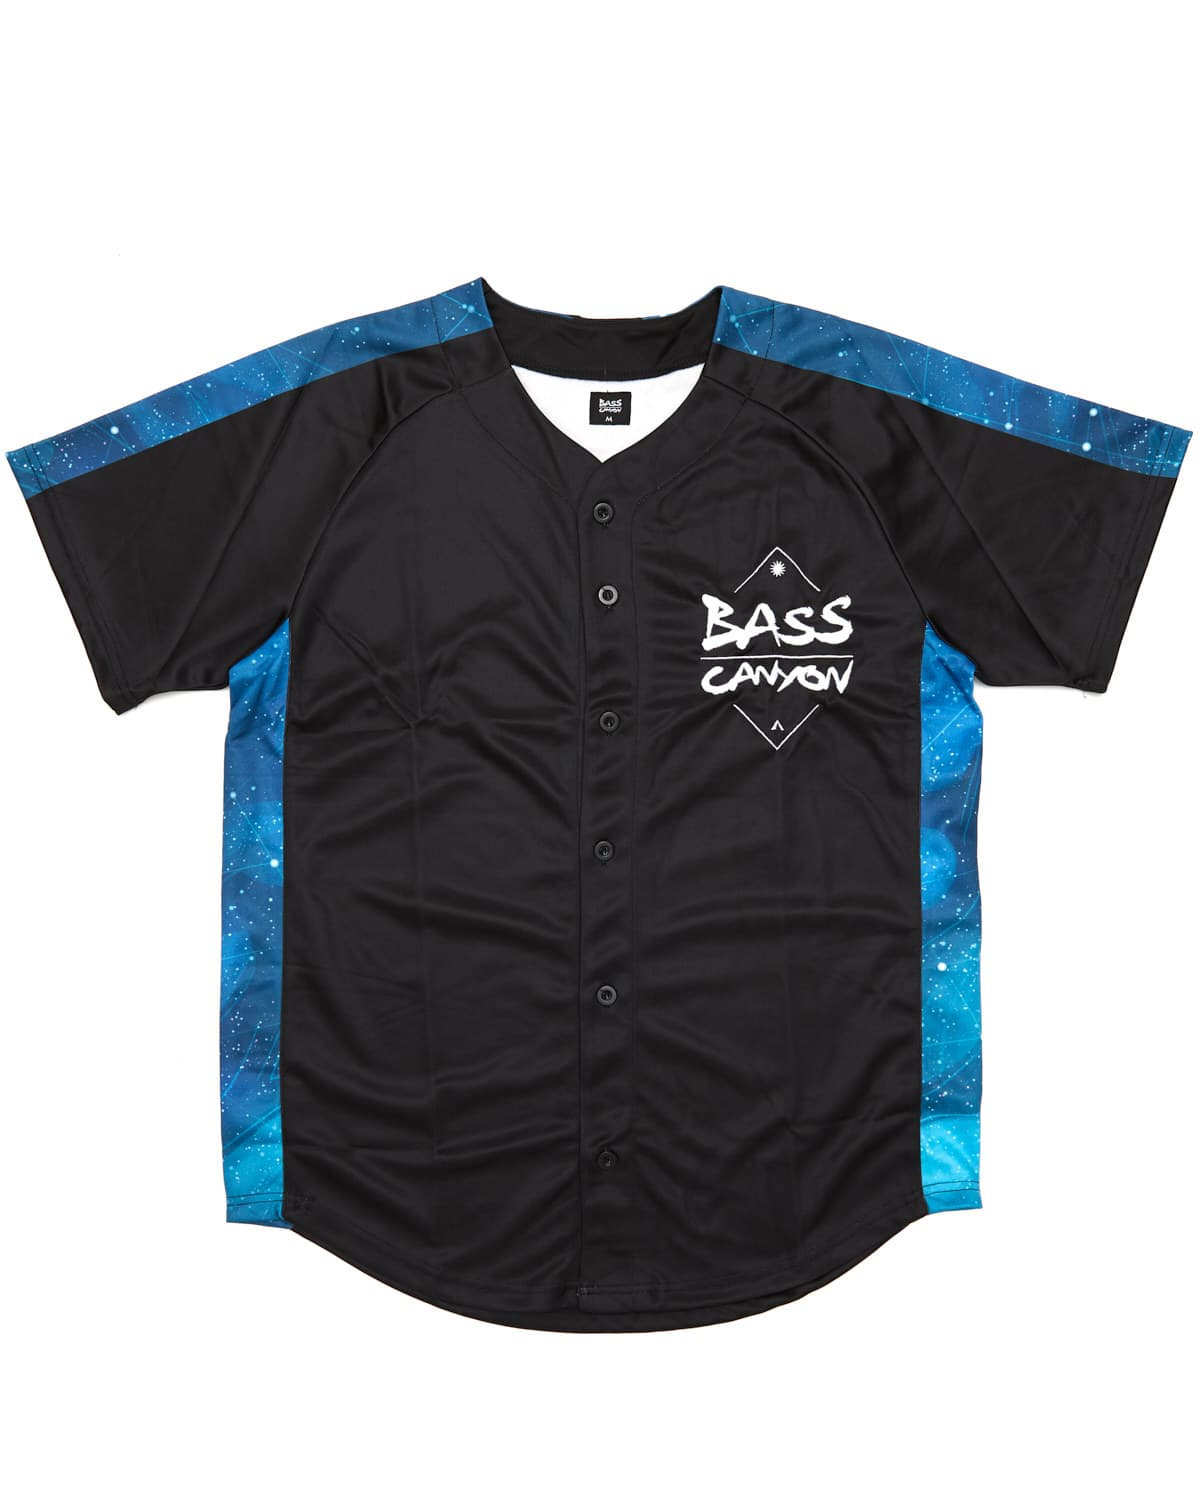 Excision 'Bass Canyon 2019' Baseball Jersey - Black/Blue